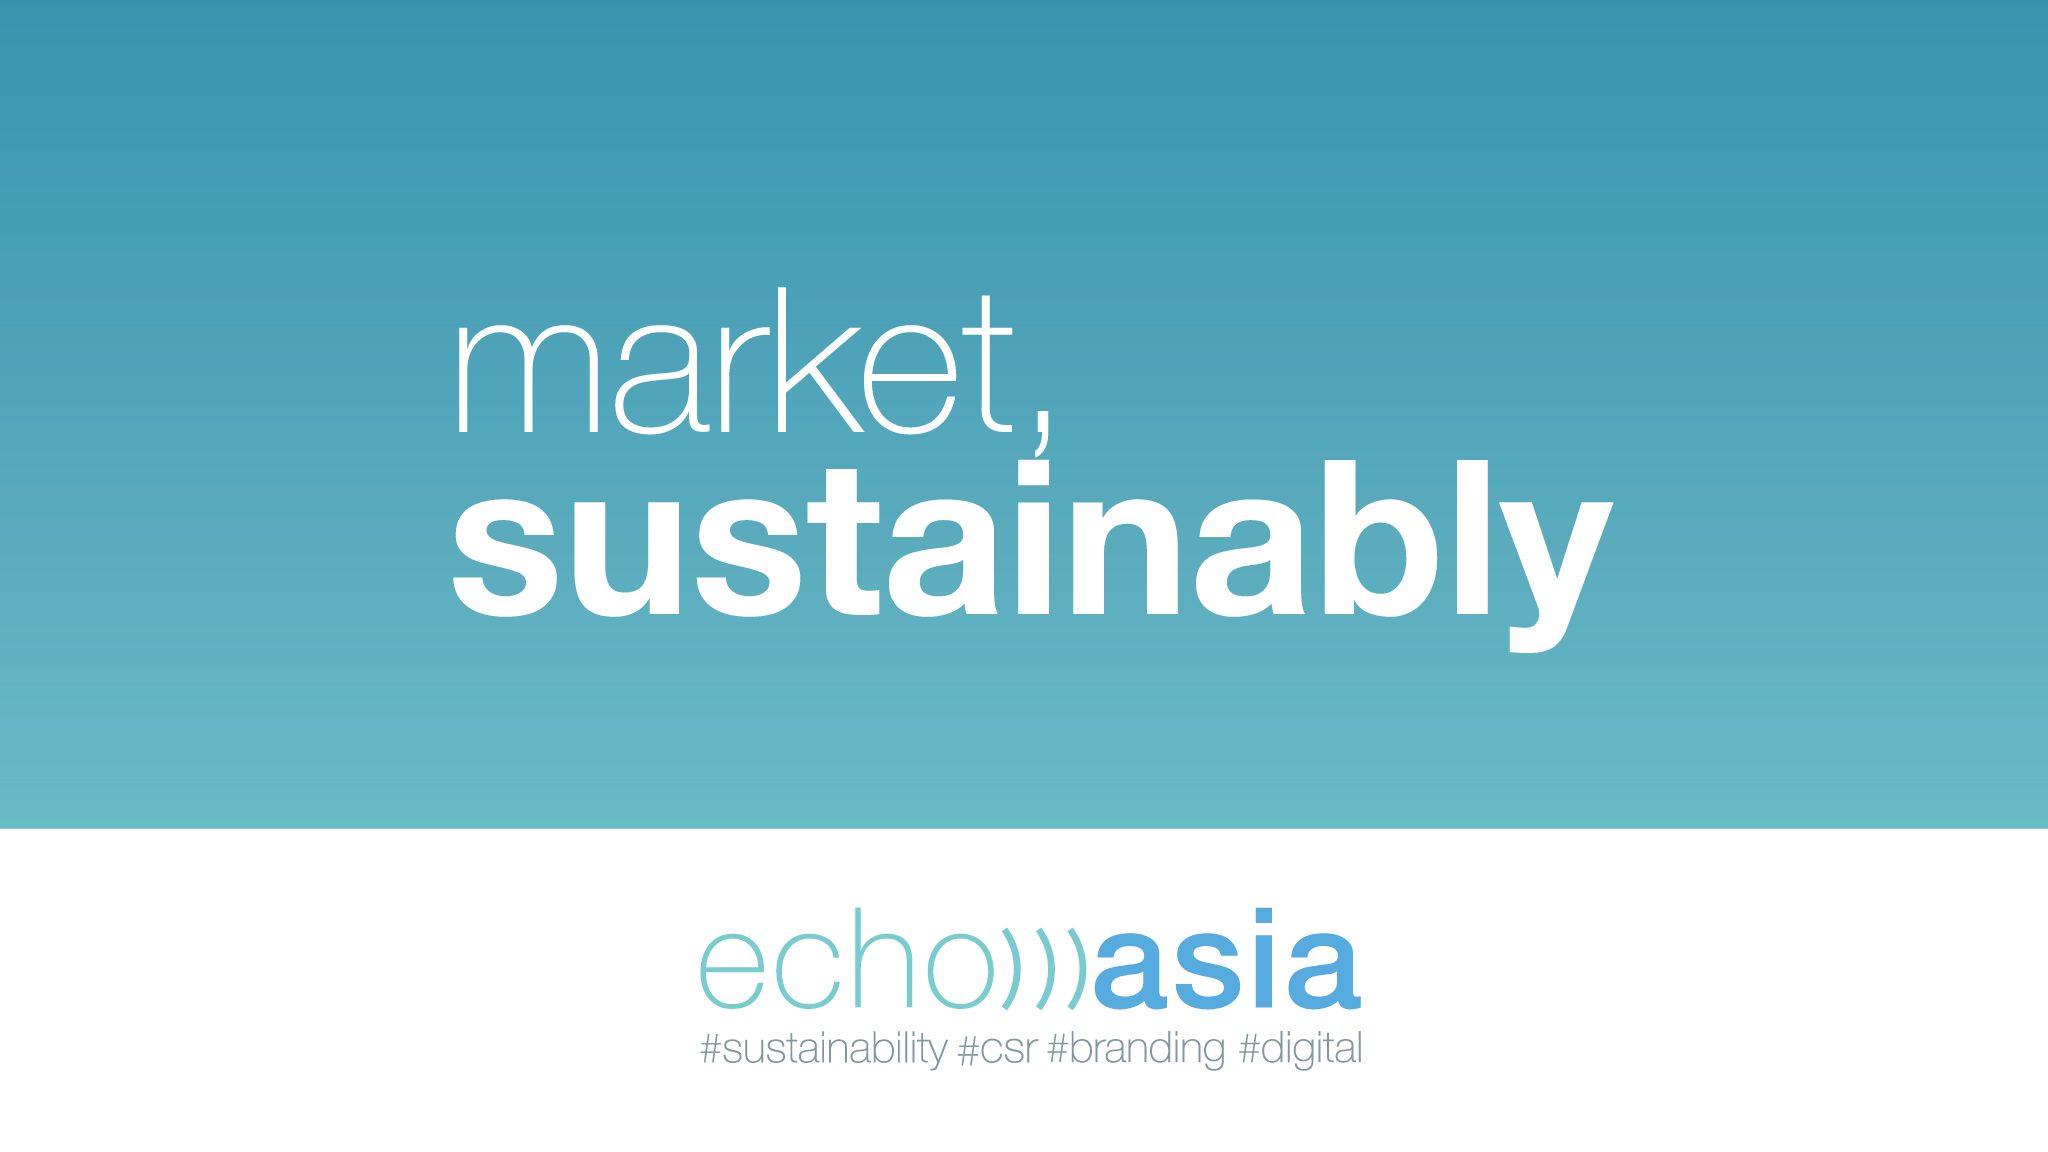 EA-MarketSustainbly_2020 echo asia